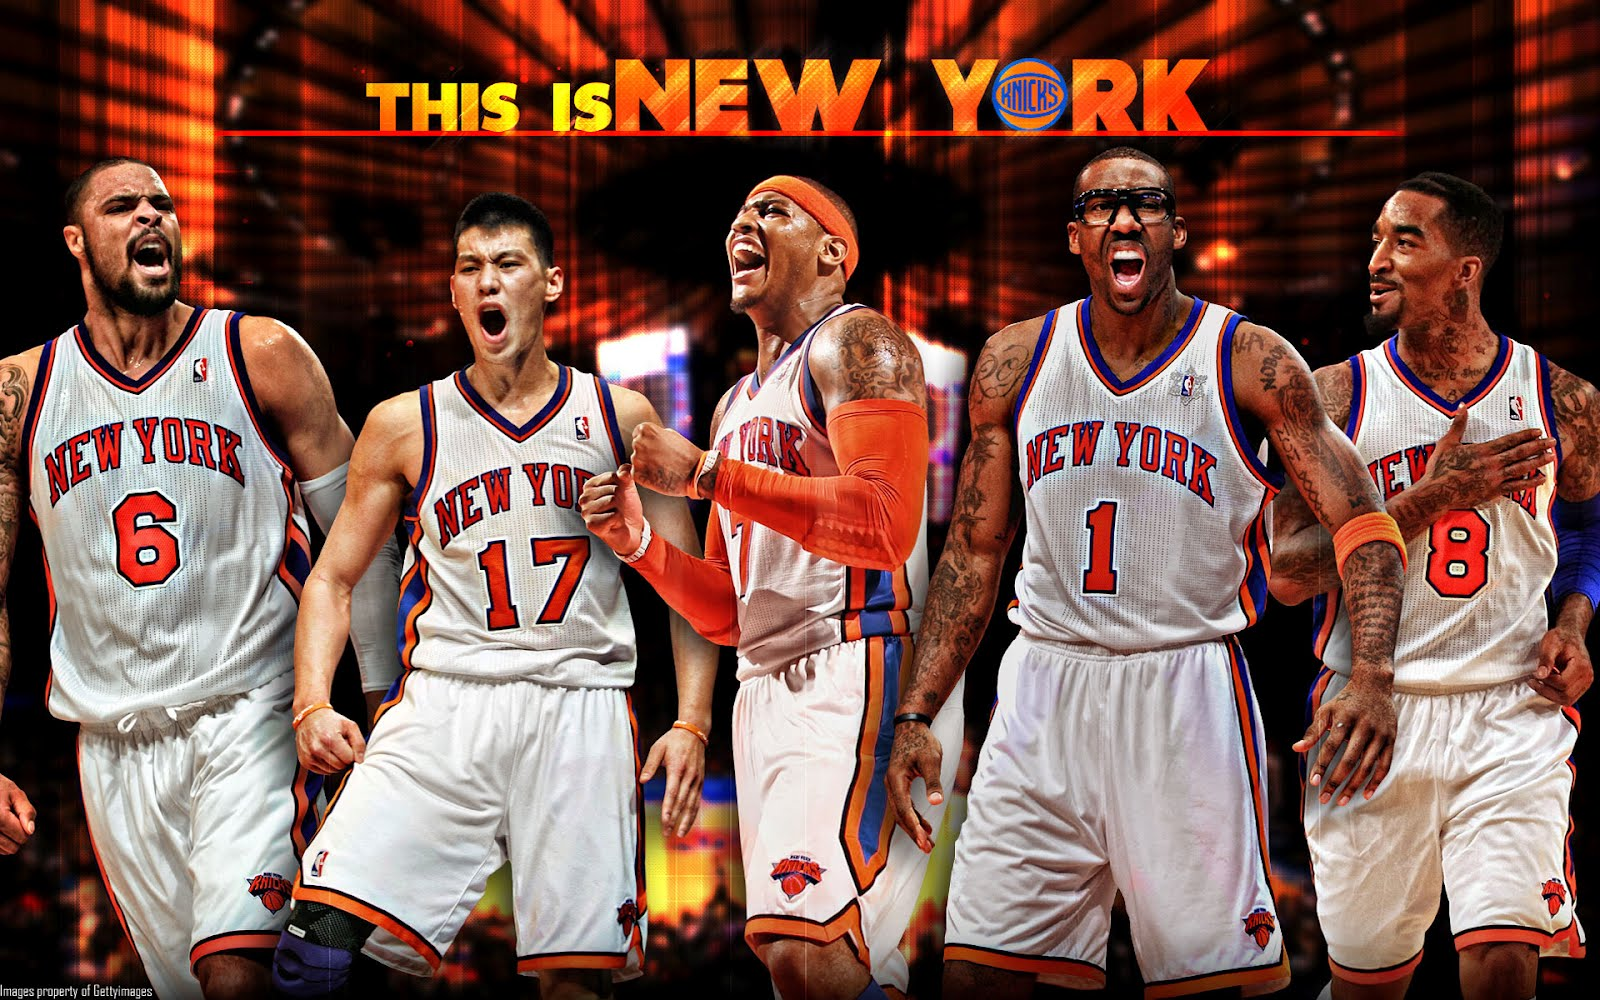 http://3.bp.blogspot.com/-aszQqyZjdgc/T2u3dF05PbI/AAAAAAAAQYs/-0Ifrm-2ZcM/s1600/New-York-Knicks-Starting-5-2012-Wallpaper-BasketWallpapers.com-.jpg